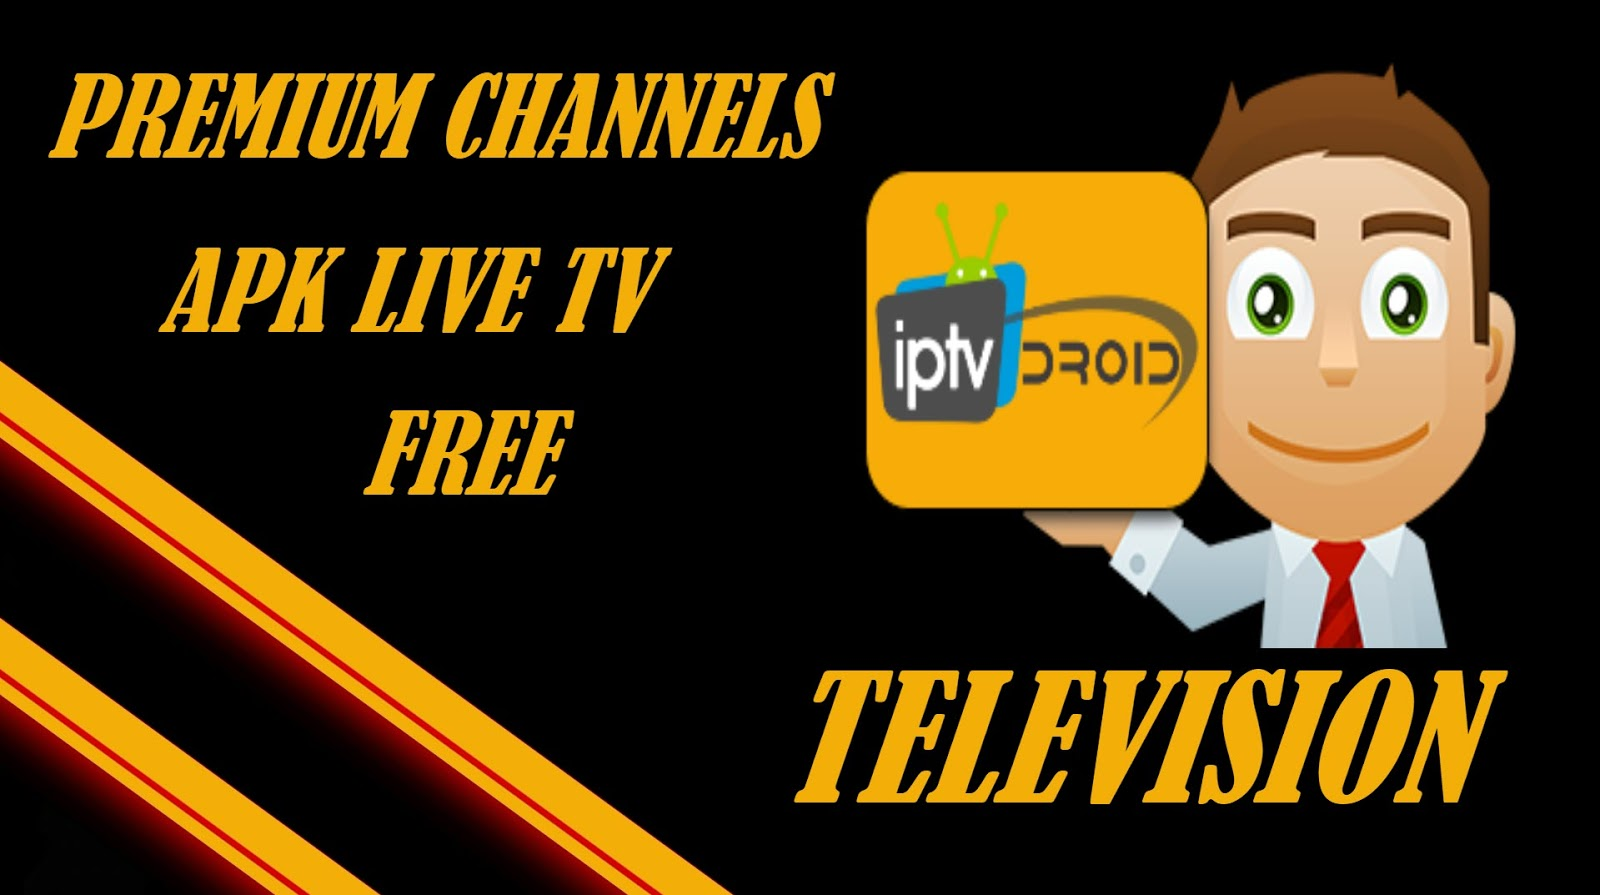 Free Premium Iptv Channels Apk For Live Tv Sports Firestick Android